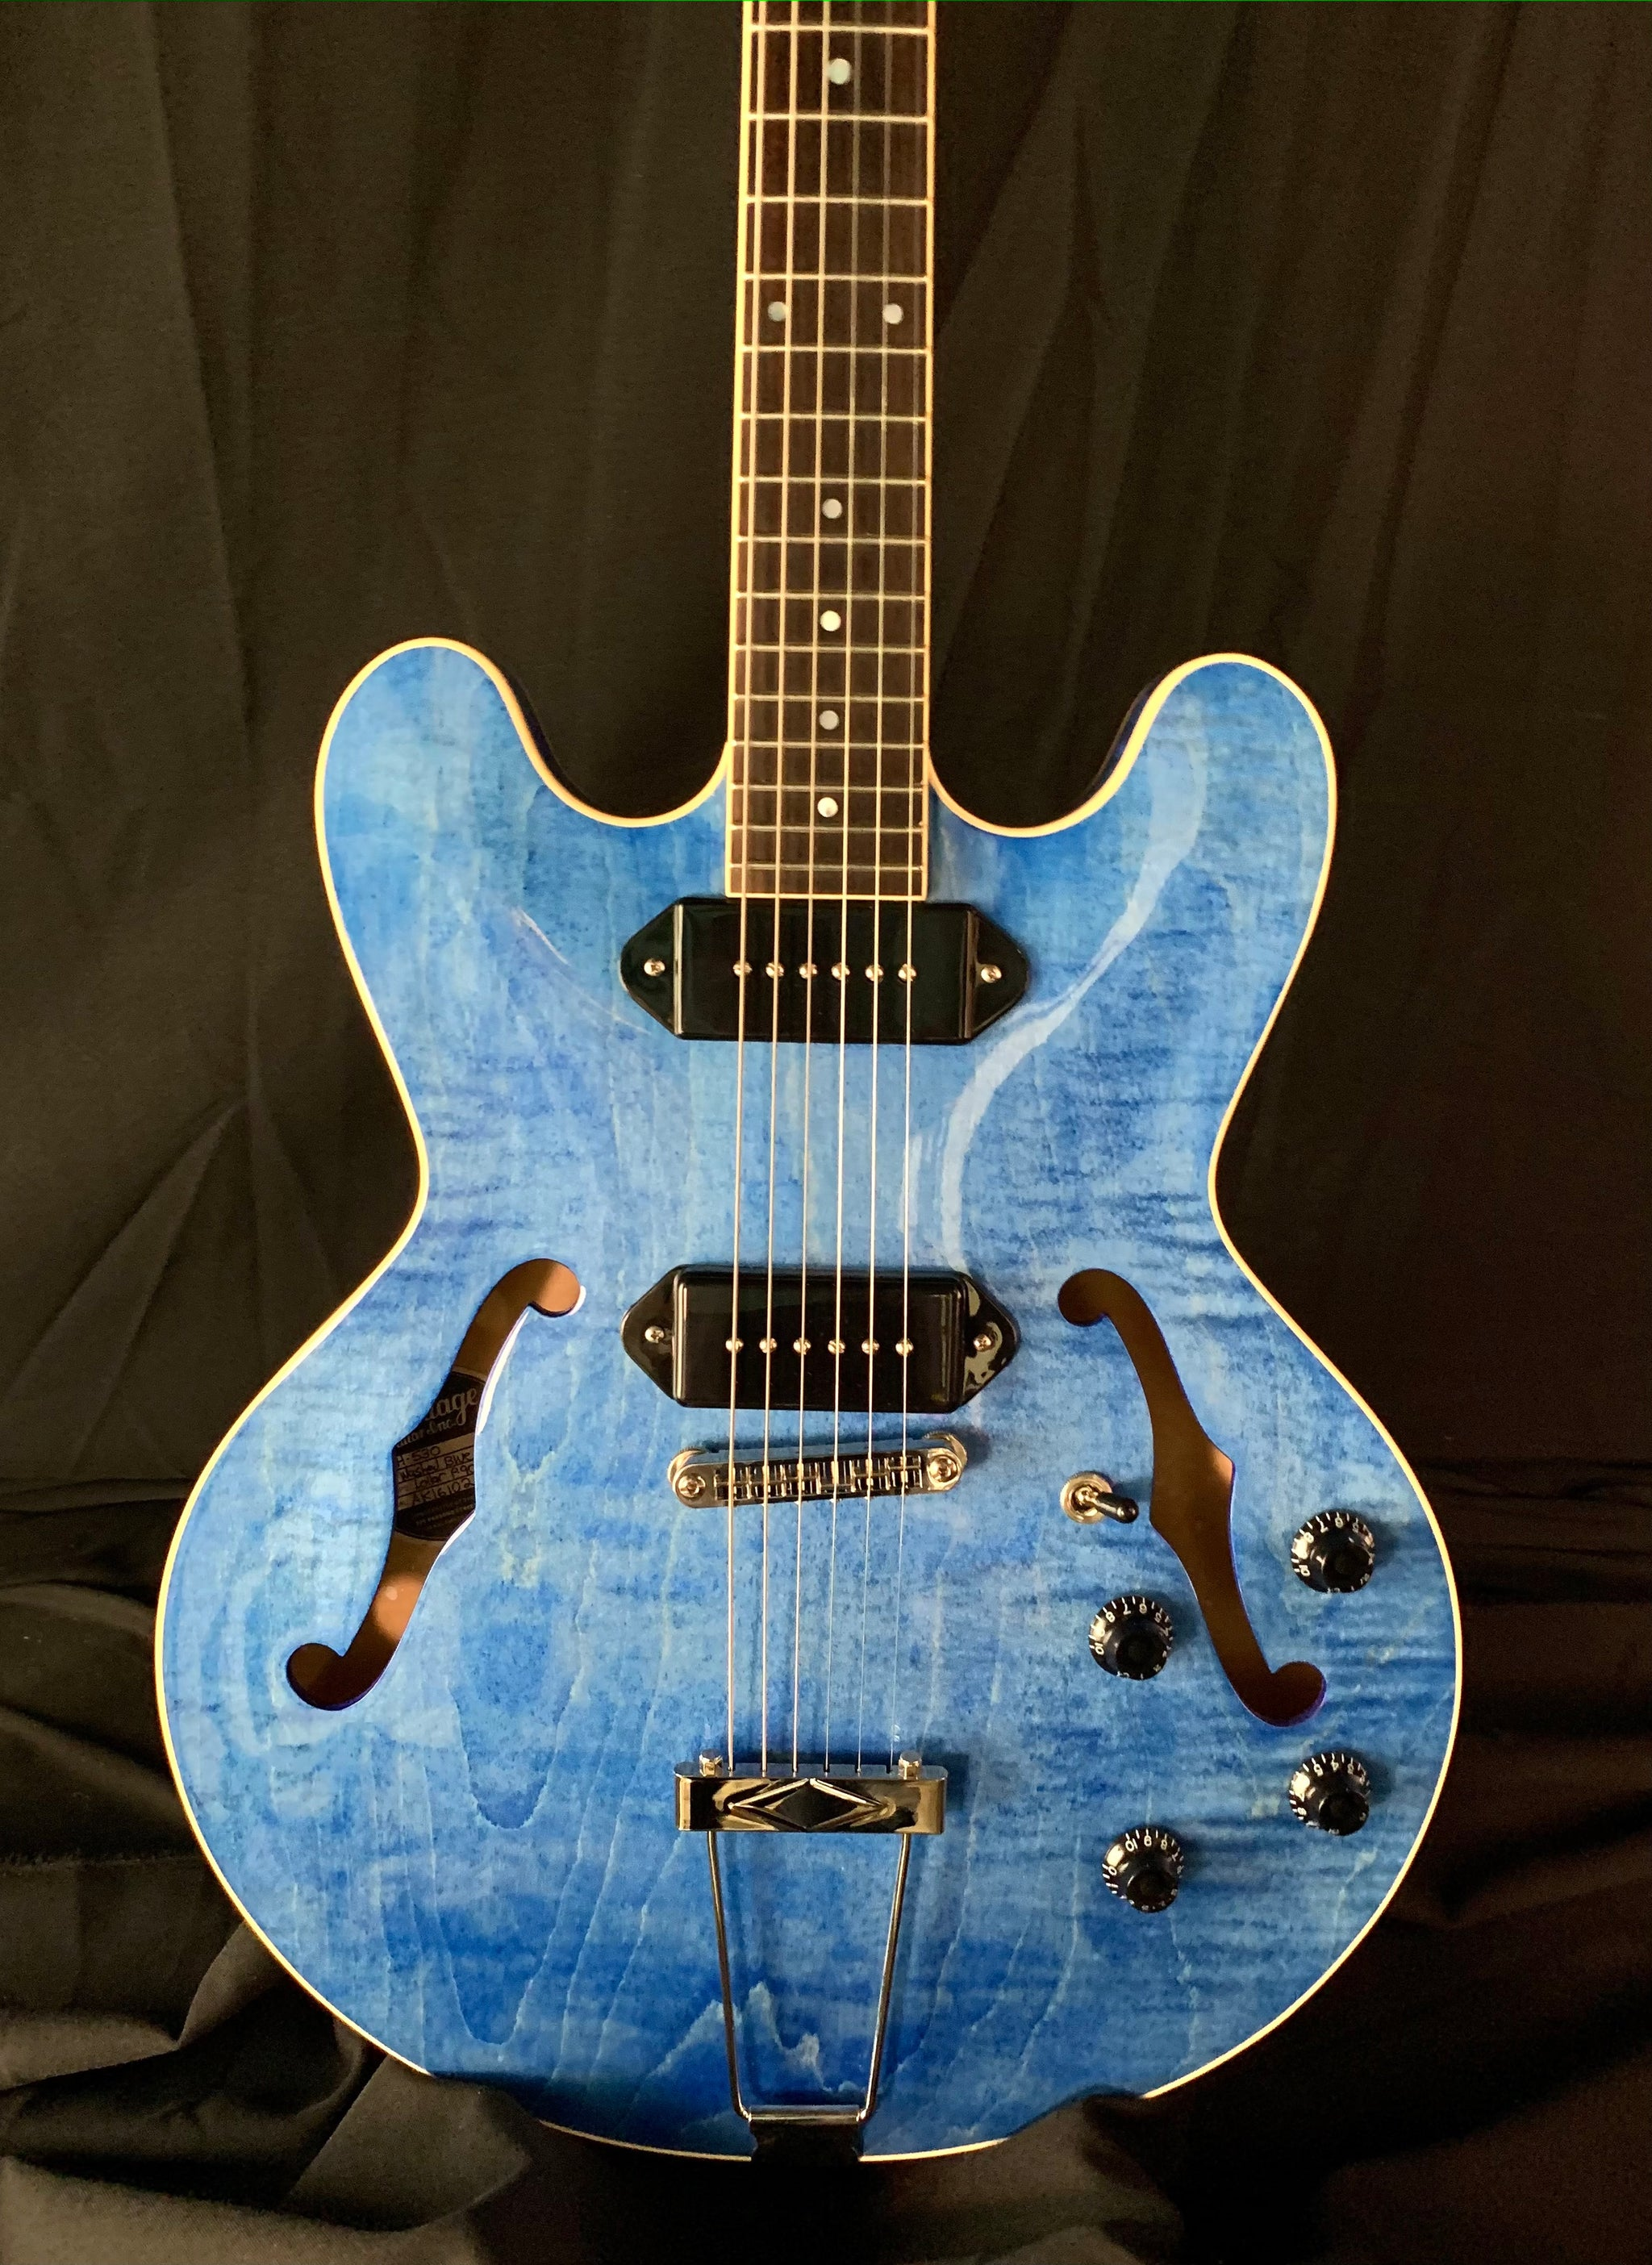 Heritage H530 Washed Blue Finish